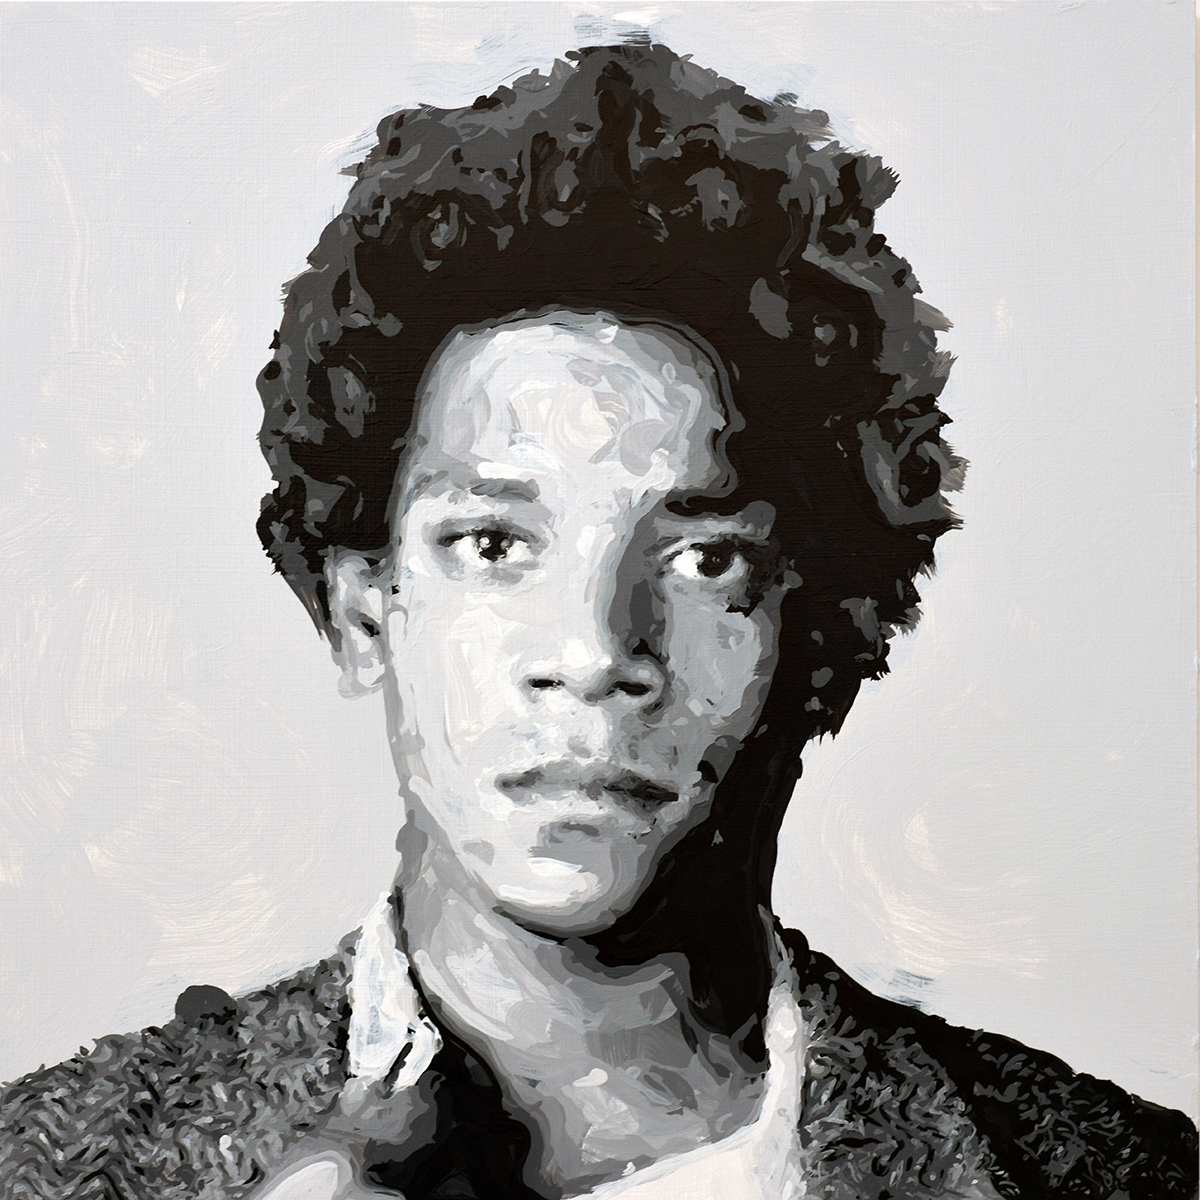 Rob and Nick Carter - RN1266, Jean-Michel Basquiat - Robot Painting - Painting time: 14:41:15 - Stroke count: 6,713, 2-3 December 2019 · © Copyright 2020